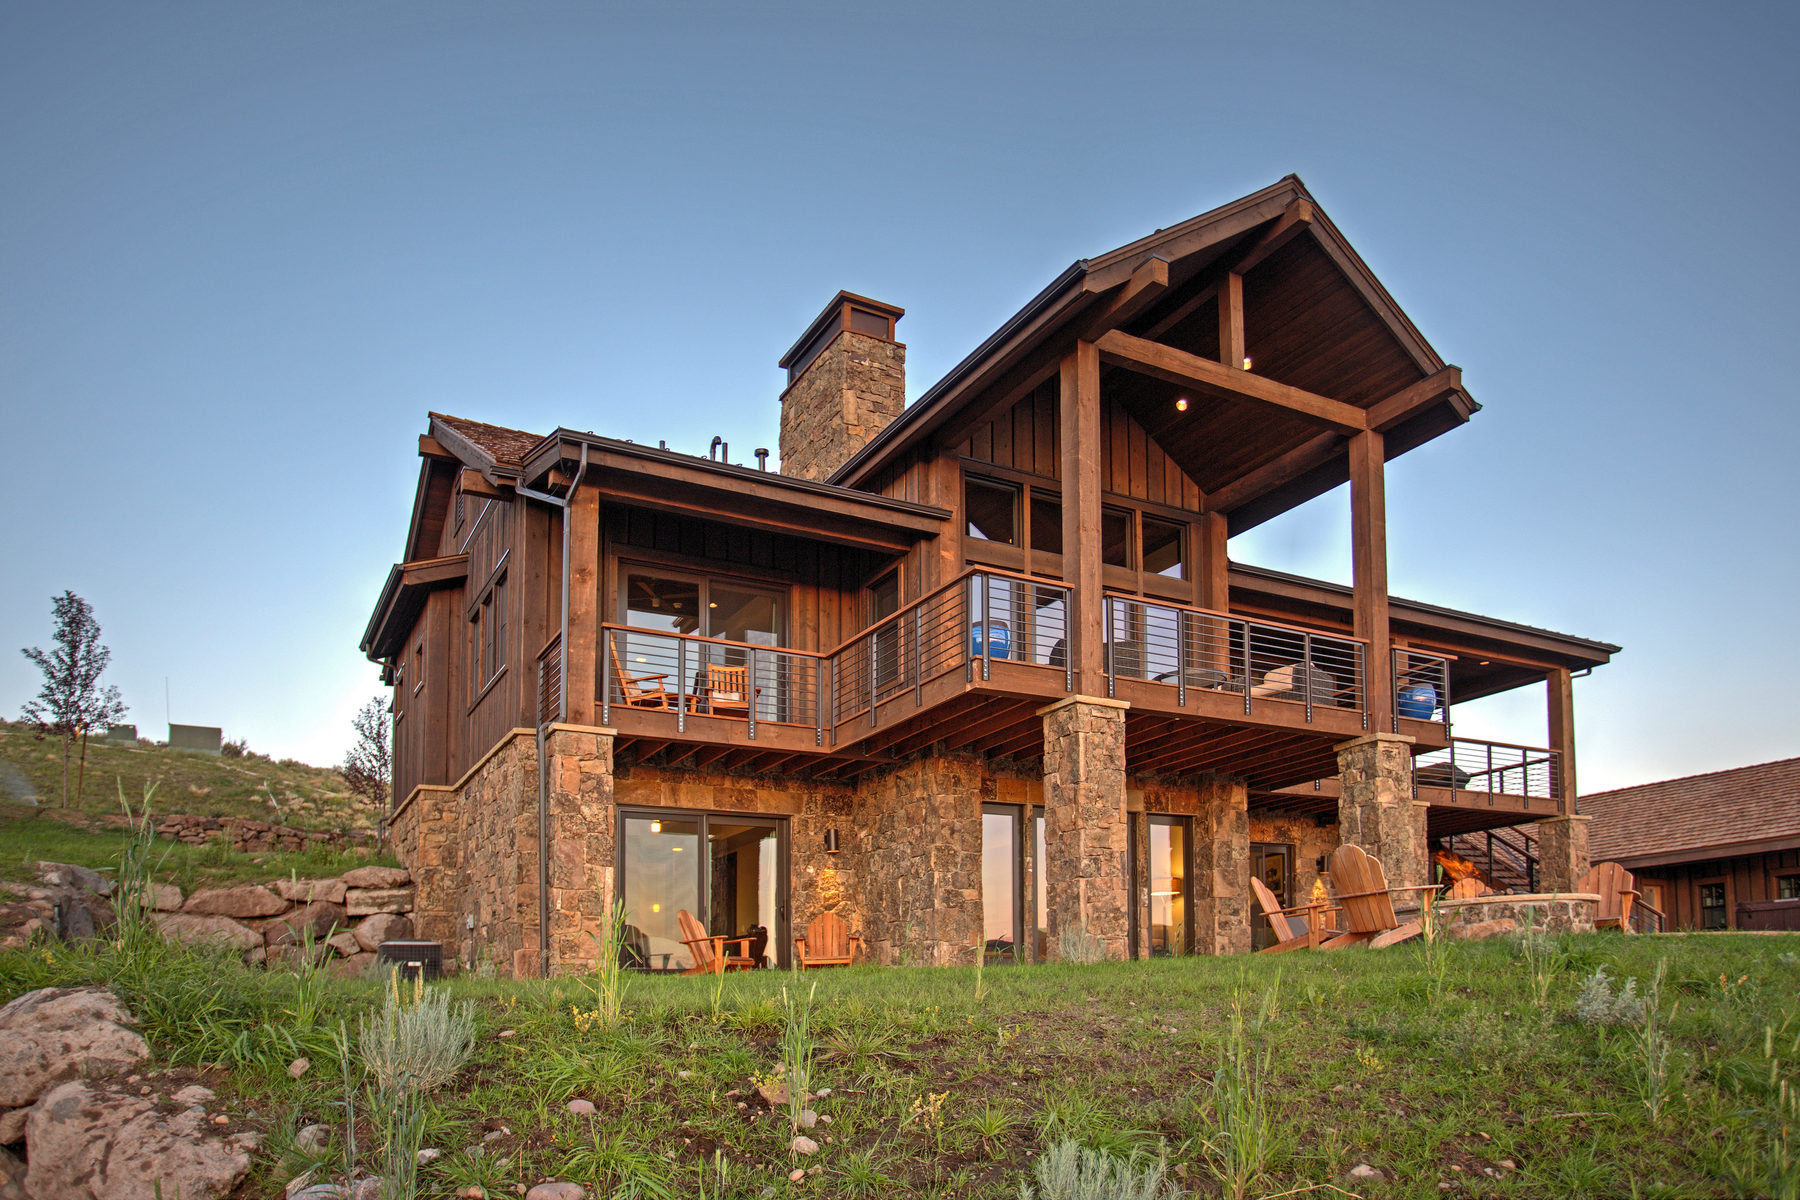 Villa per Vendita alle ore Juniper Cabin with Spectacular Views 6985 N Rees Jones Way #166, Heber City, Utah, 84032 Stati Uniti